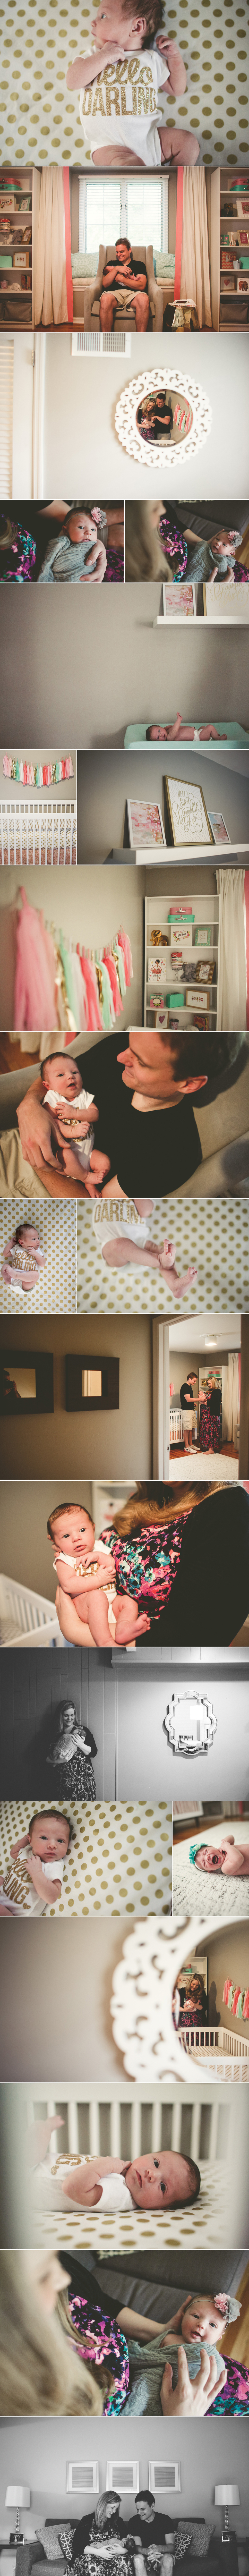 jason_domingues_photography_best_creative_family_photographer_newborn_session_kc_year_in_the_life_kansas_city_documentary_baby_